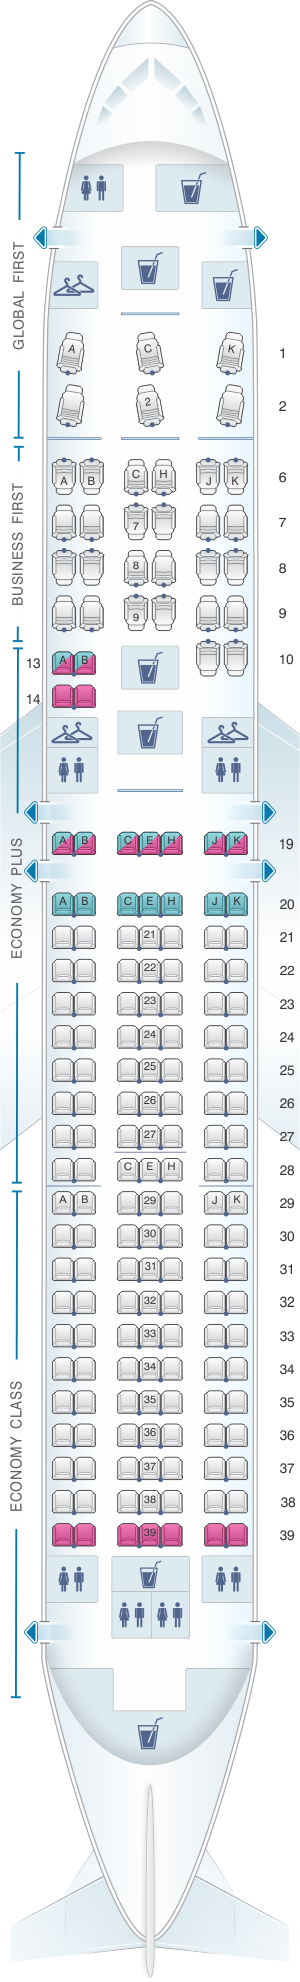 Seat map for United Airlines Boeing B767 300ER - version 1